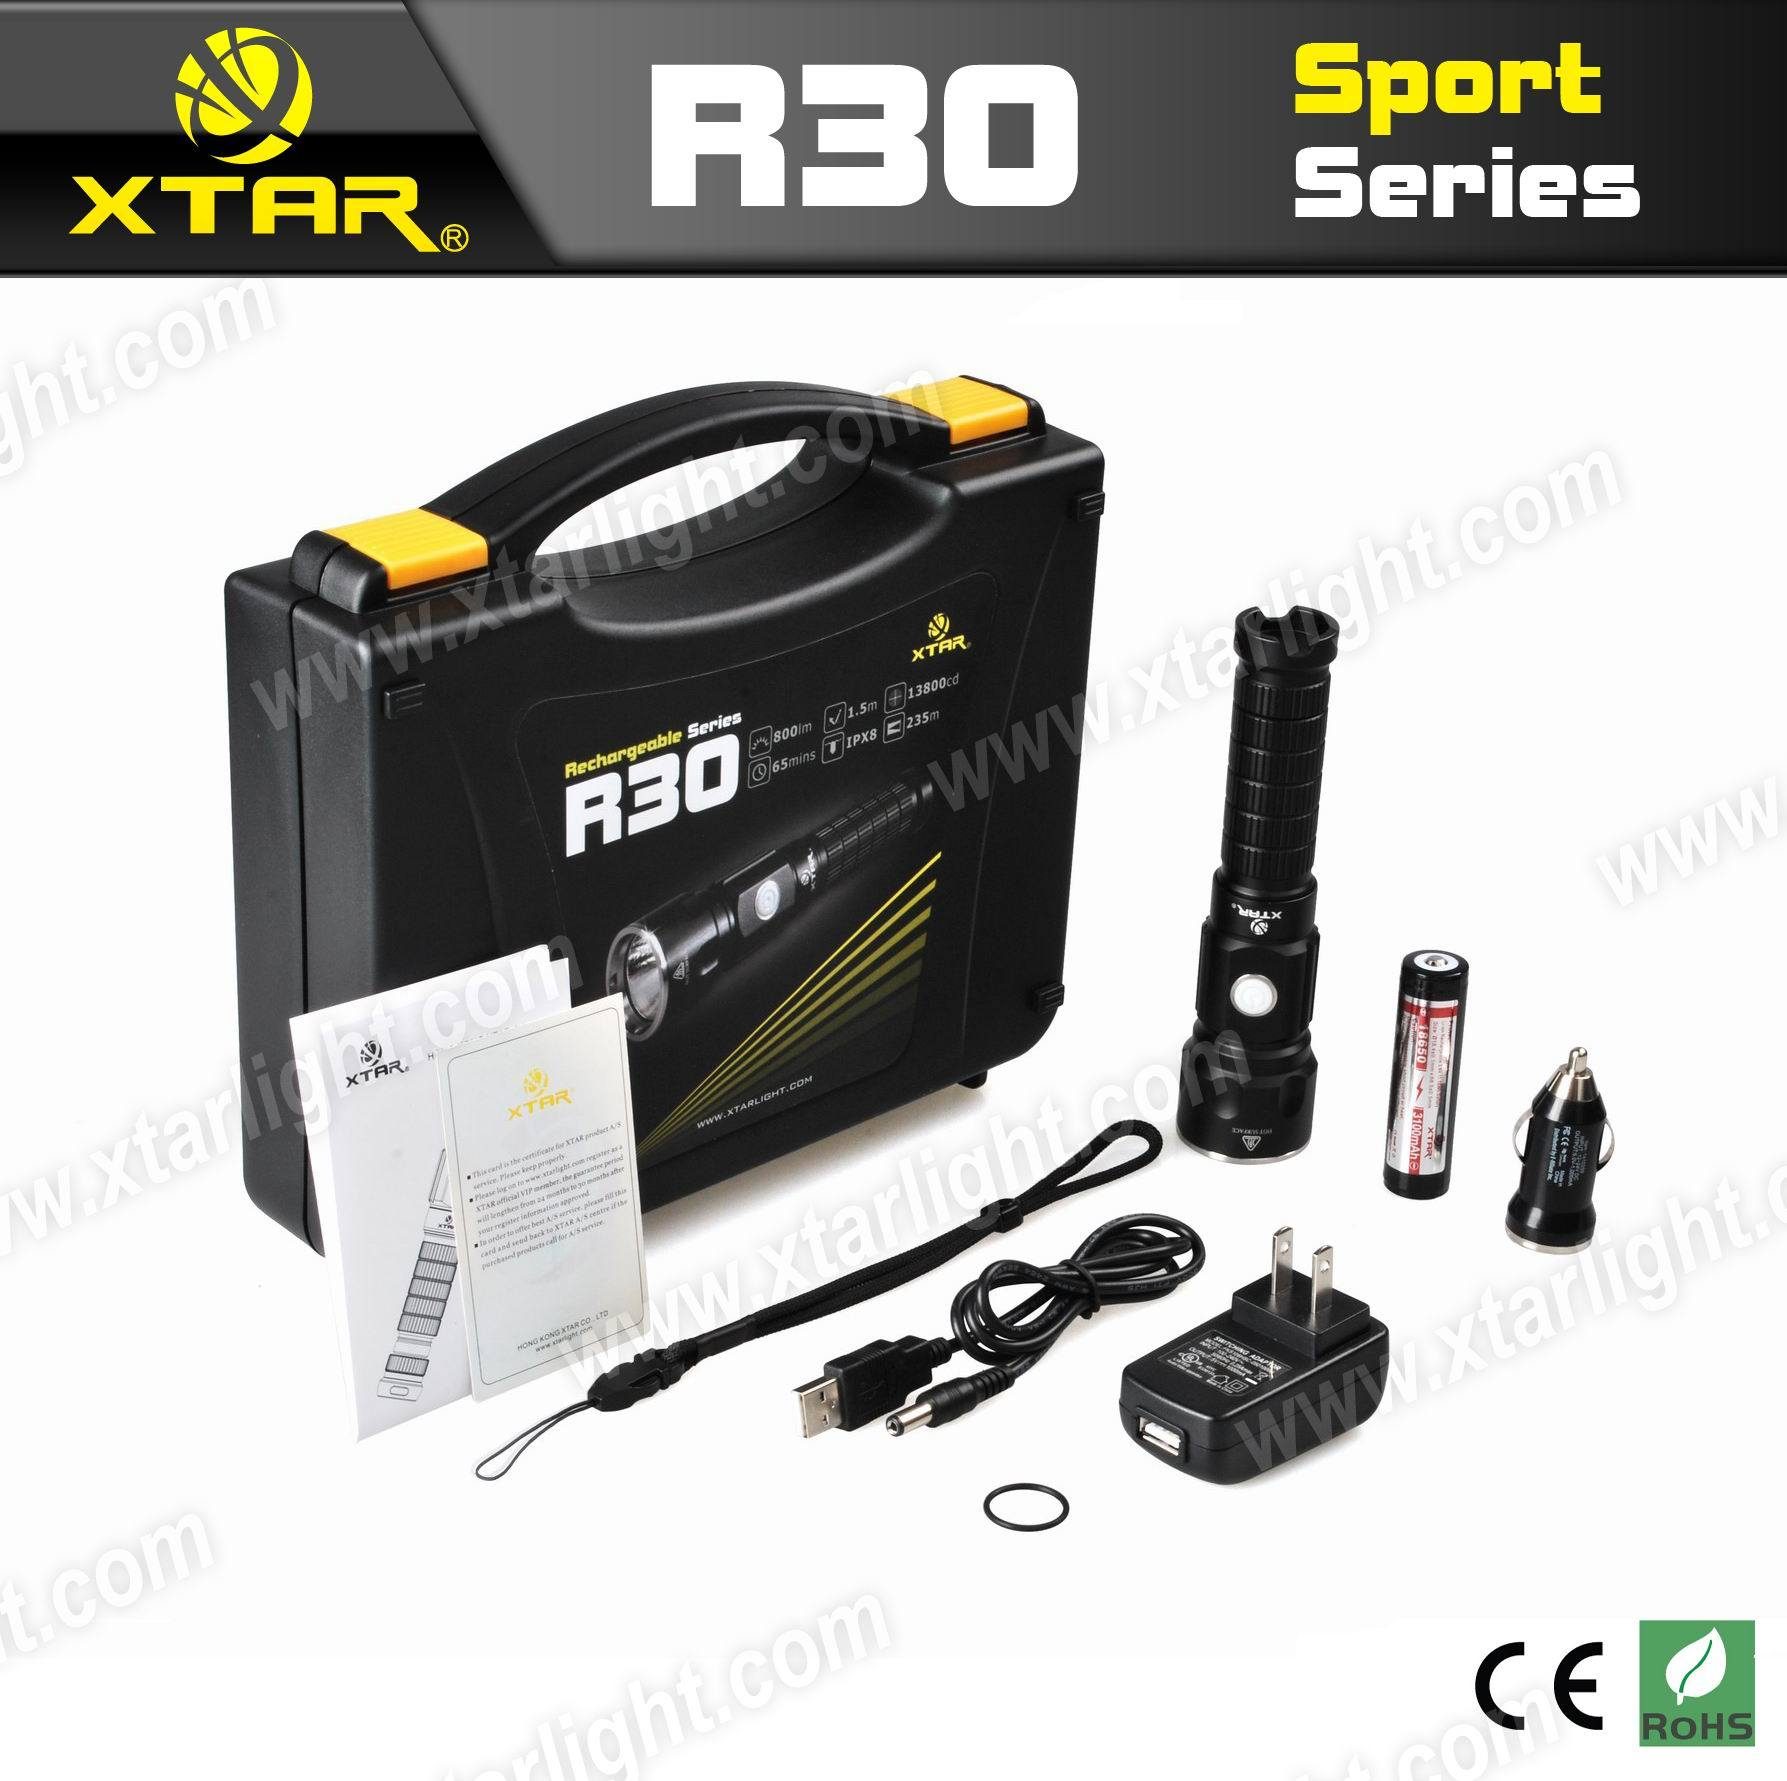 Professional High Lm Rechargeable Flashlight for Camping, Daily Used (XTAR R30)